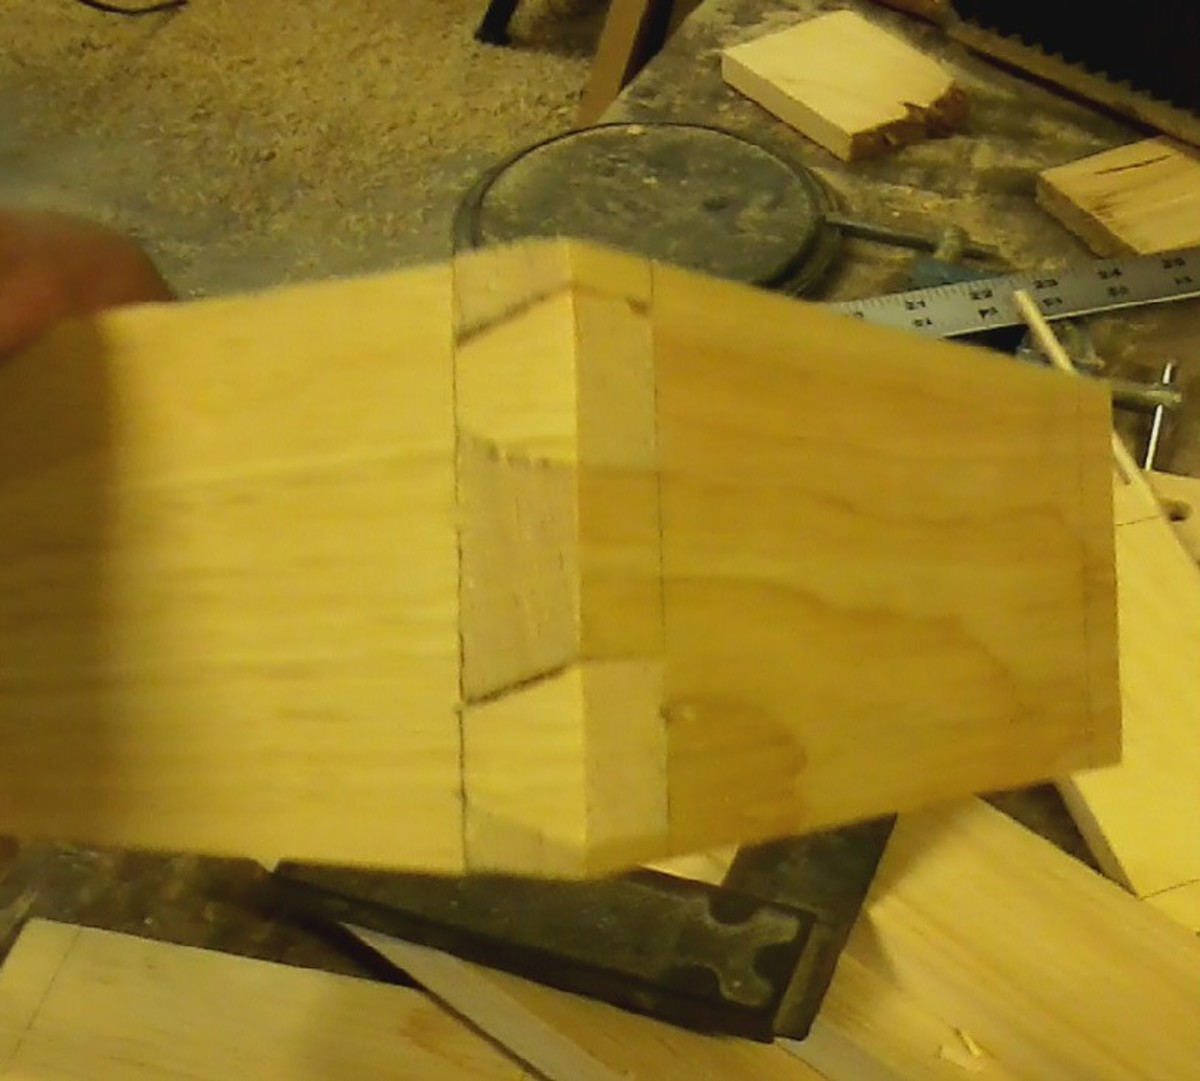 Some minor gaps might appear in your joints. These will be filled with wood putty.